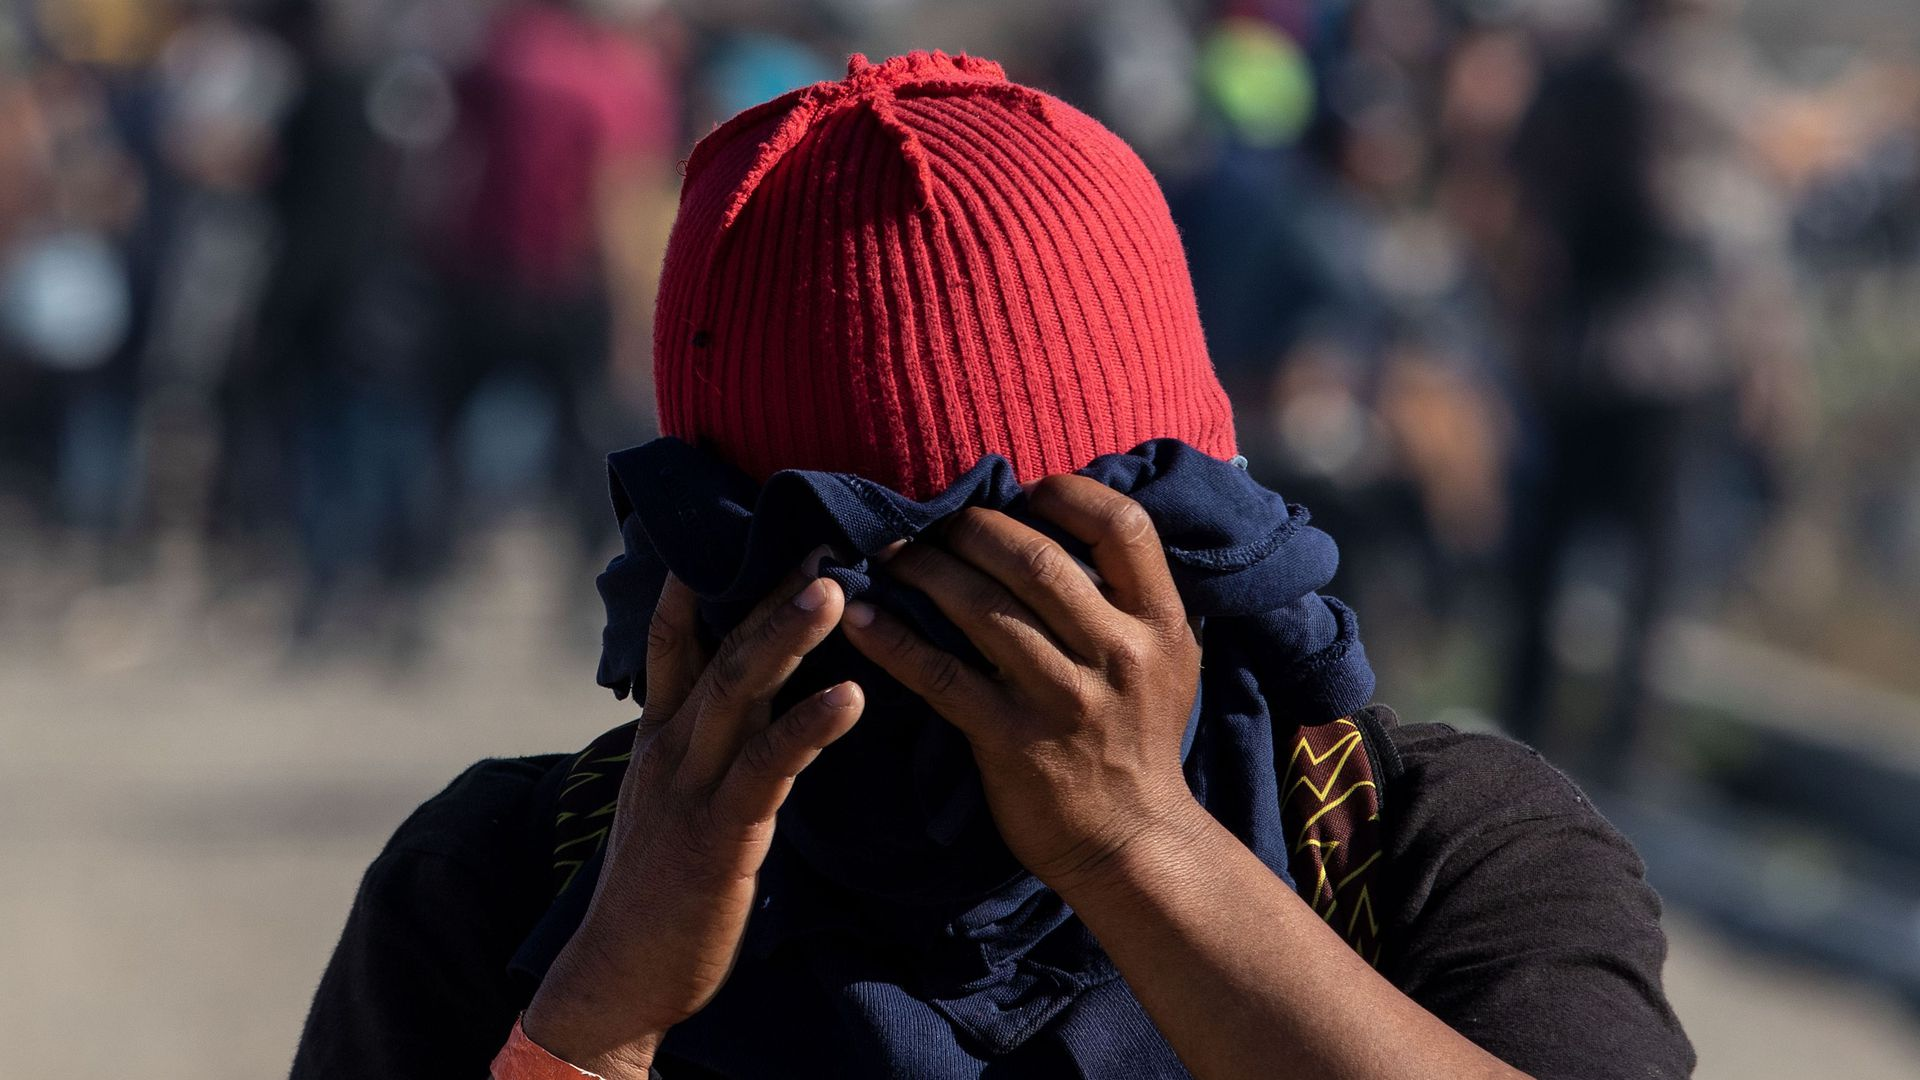 A close up shot of a migrant wearing a red hat and using a navy blue t-shirt to cover their face as tear gas is launched from U.S. border agents.